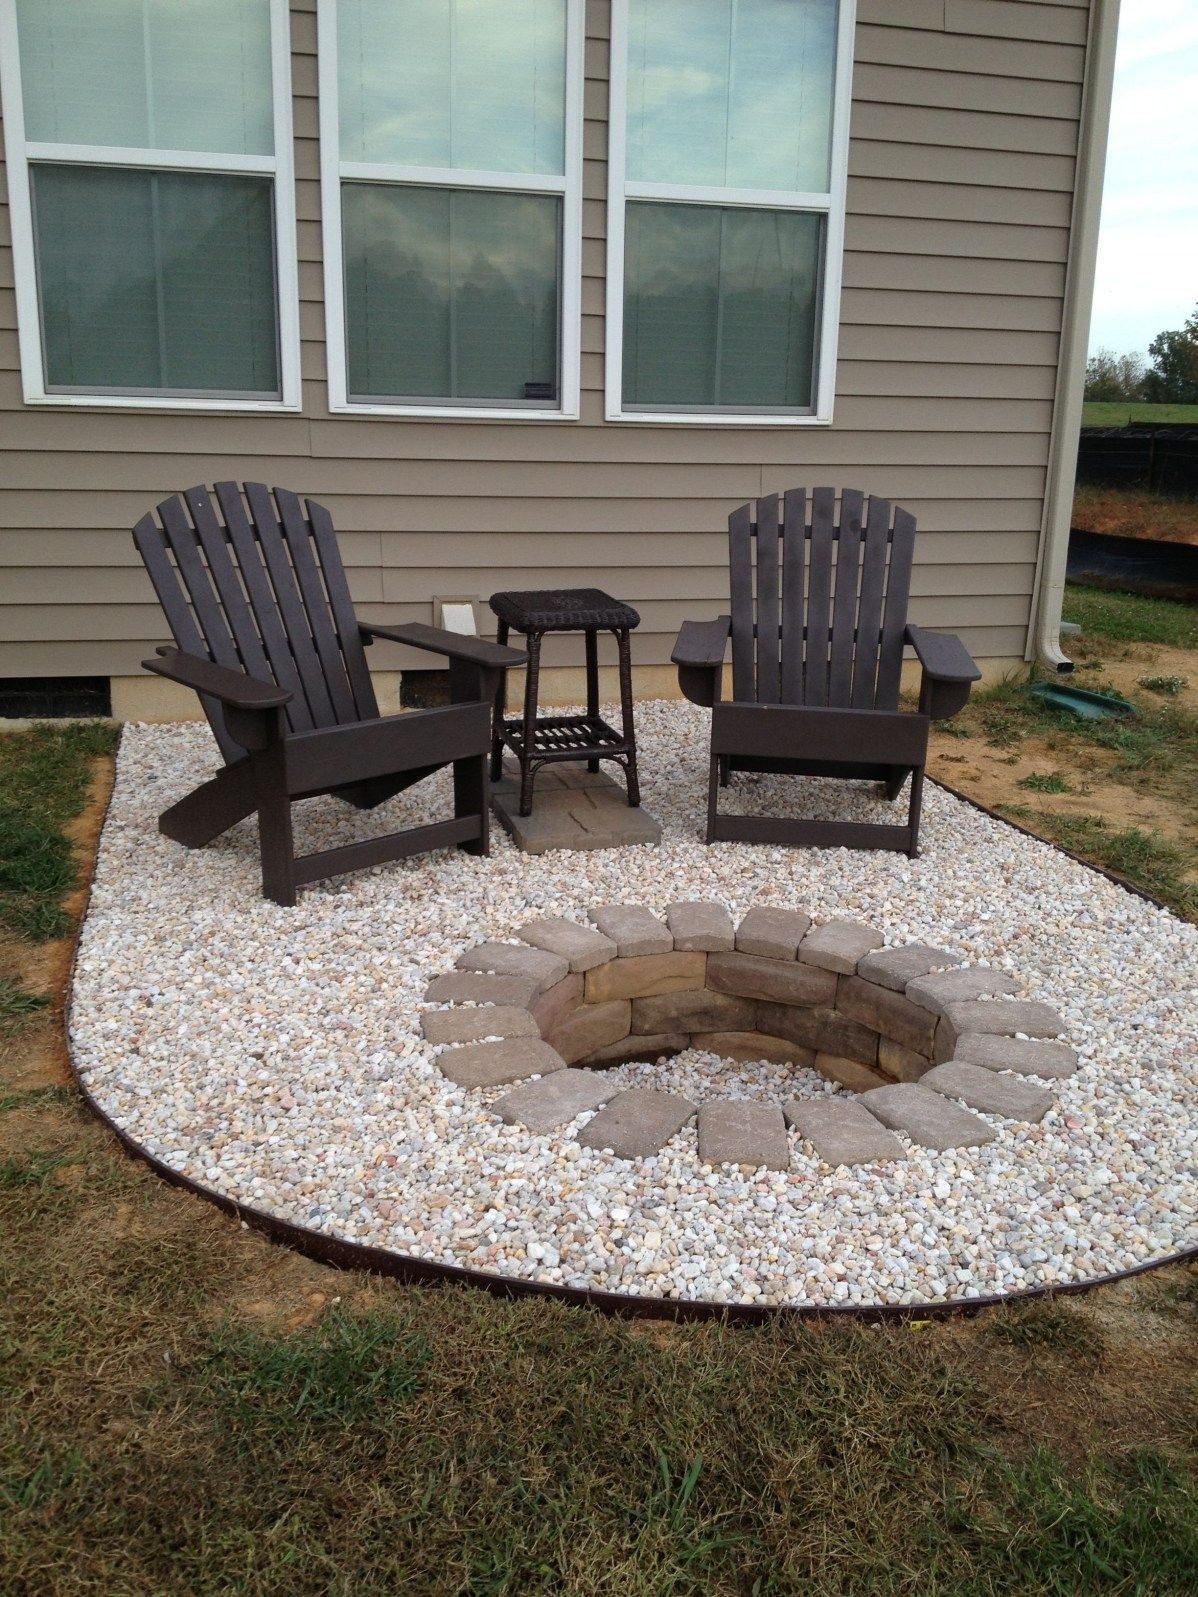 64 Diy Small Firepit Ideas For Outdoor To Wram Family Cheap Fire